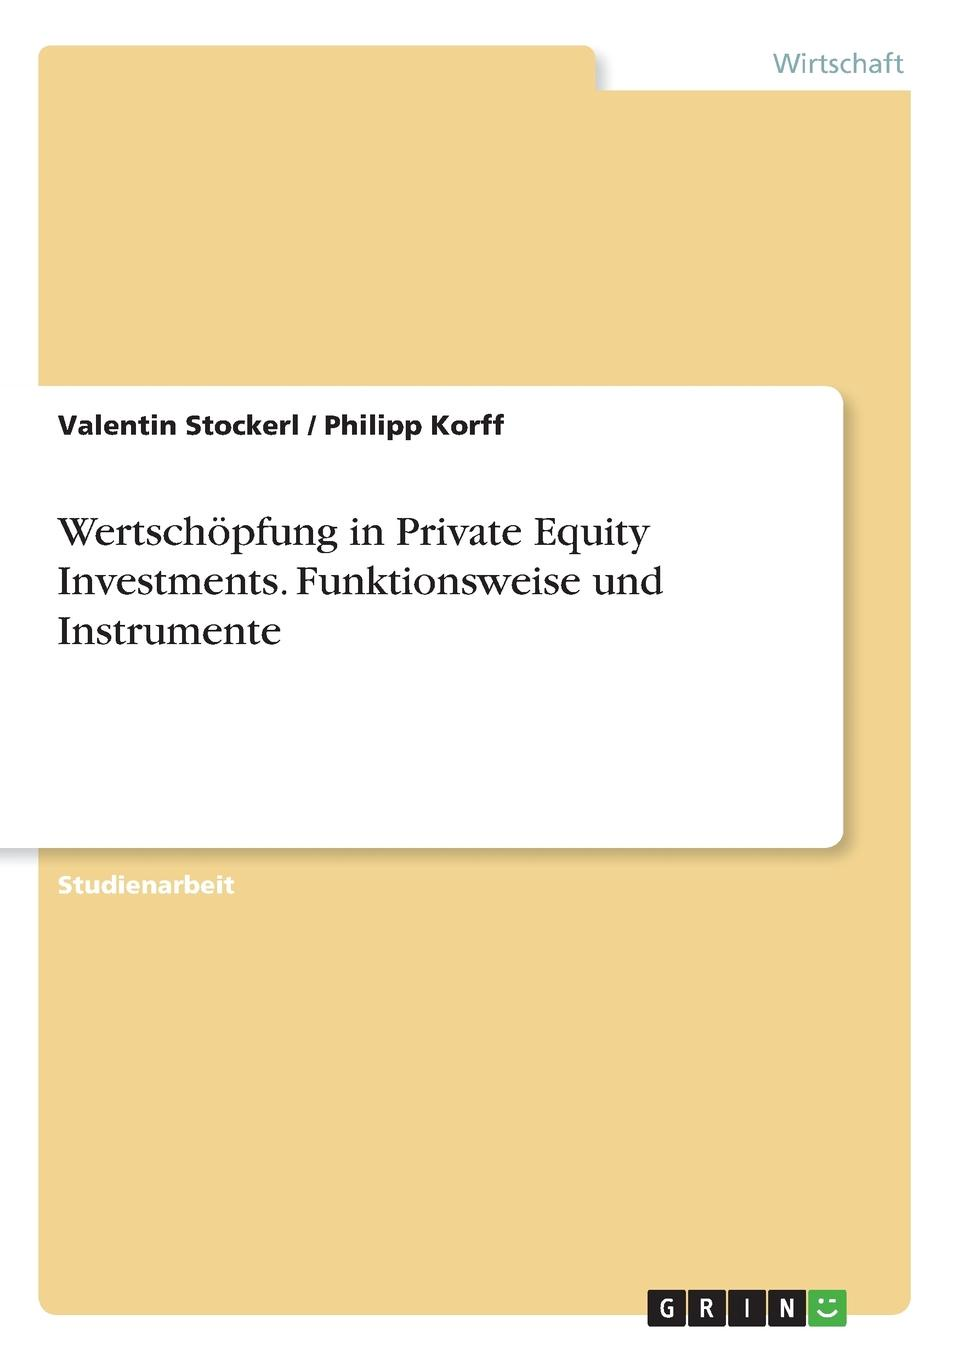 Valentin Stockerl, Philipp Korff Wertschopfung in Private Equity Investments. Funktionsweise und Instrumente dental materials tooth adult dental teeth model natomiacl tooth adult teeth model 2 times crown dental model gasen den035